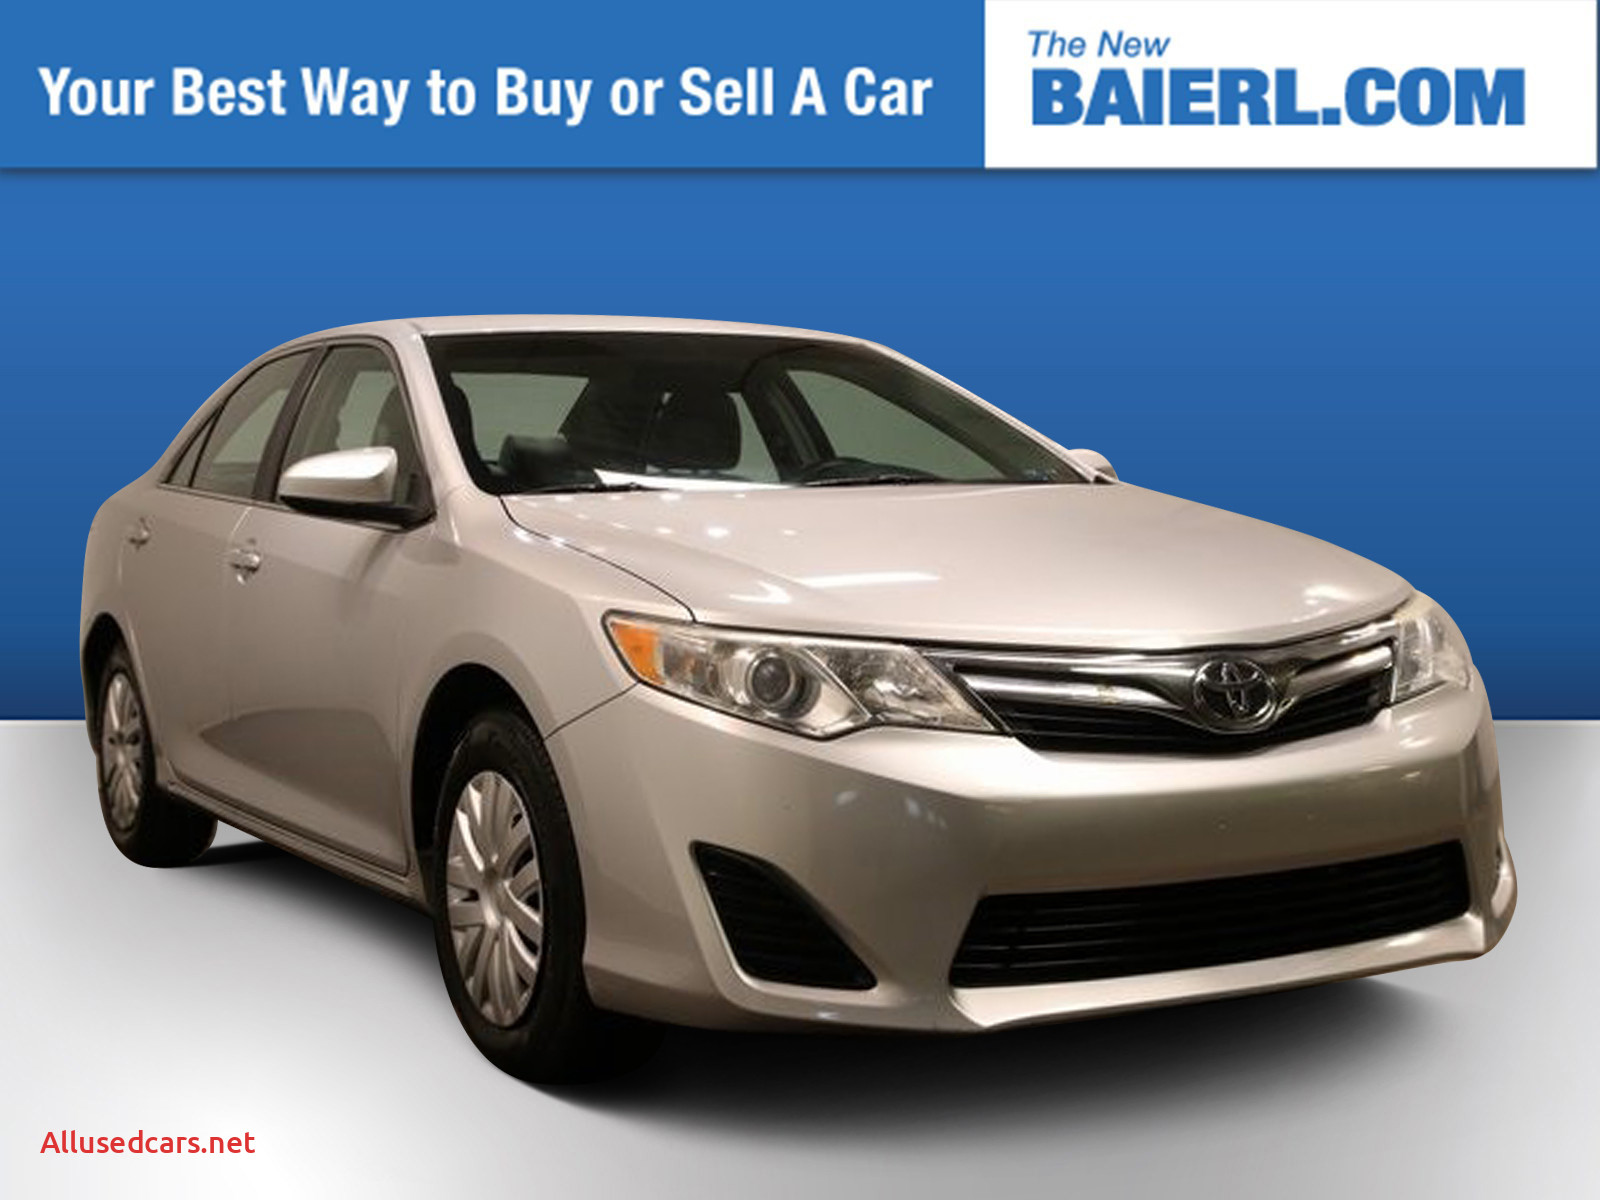 2014 toyota Camry Beautiful Pre Owned toyota Camry Express